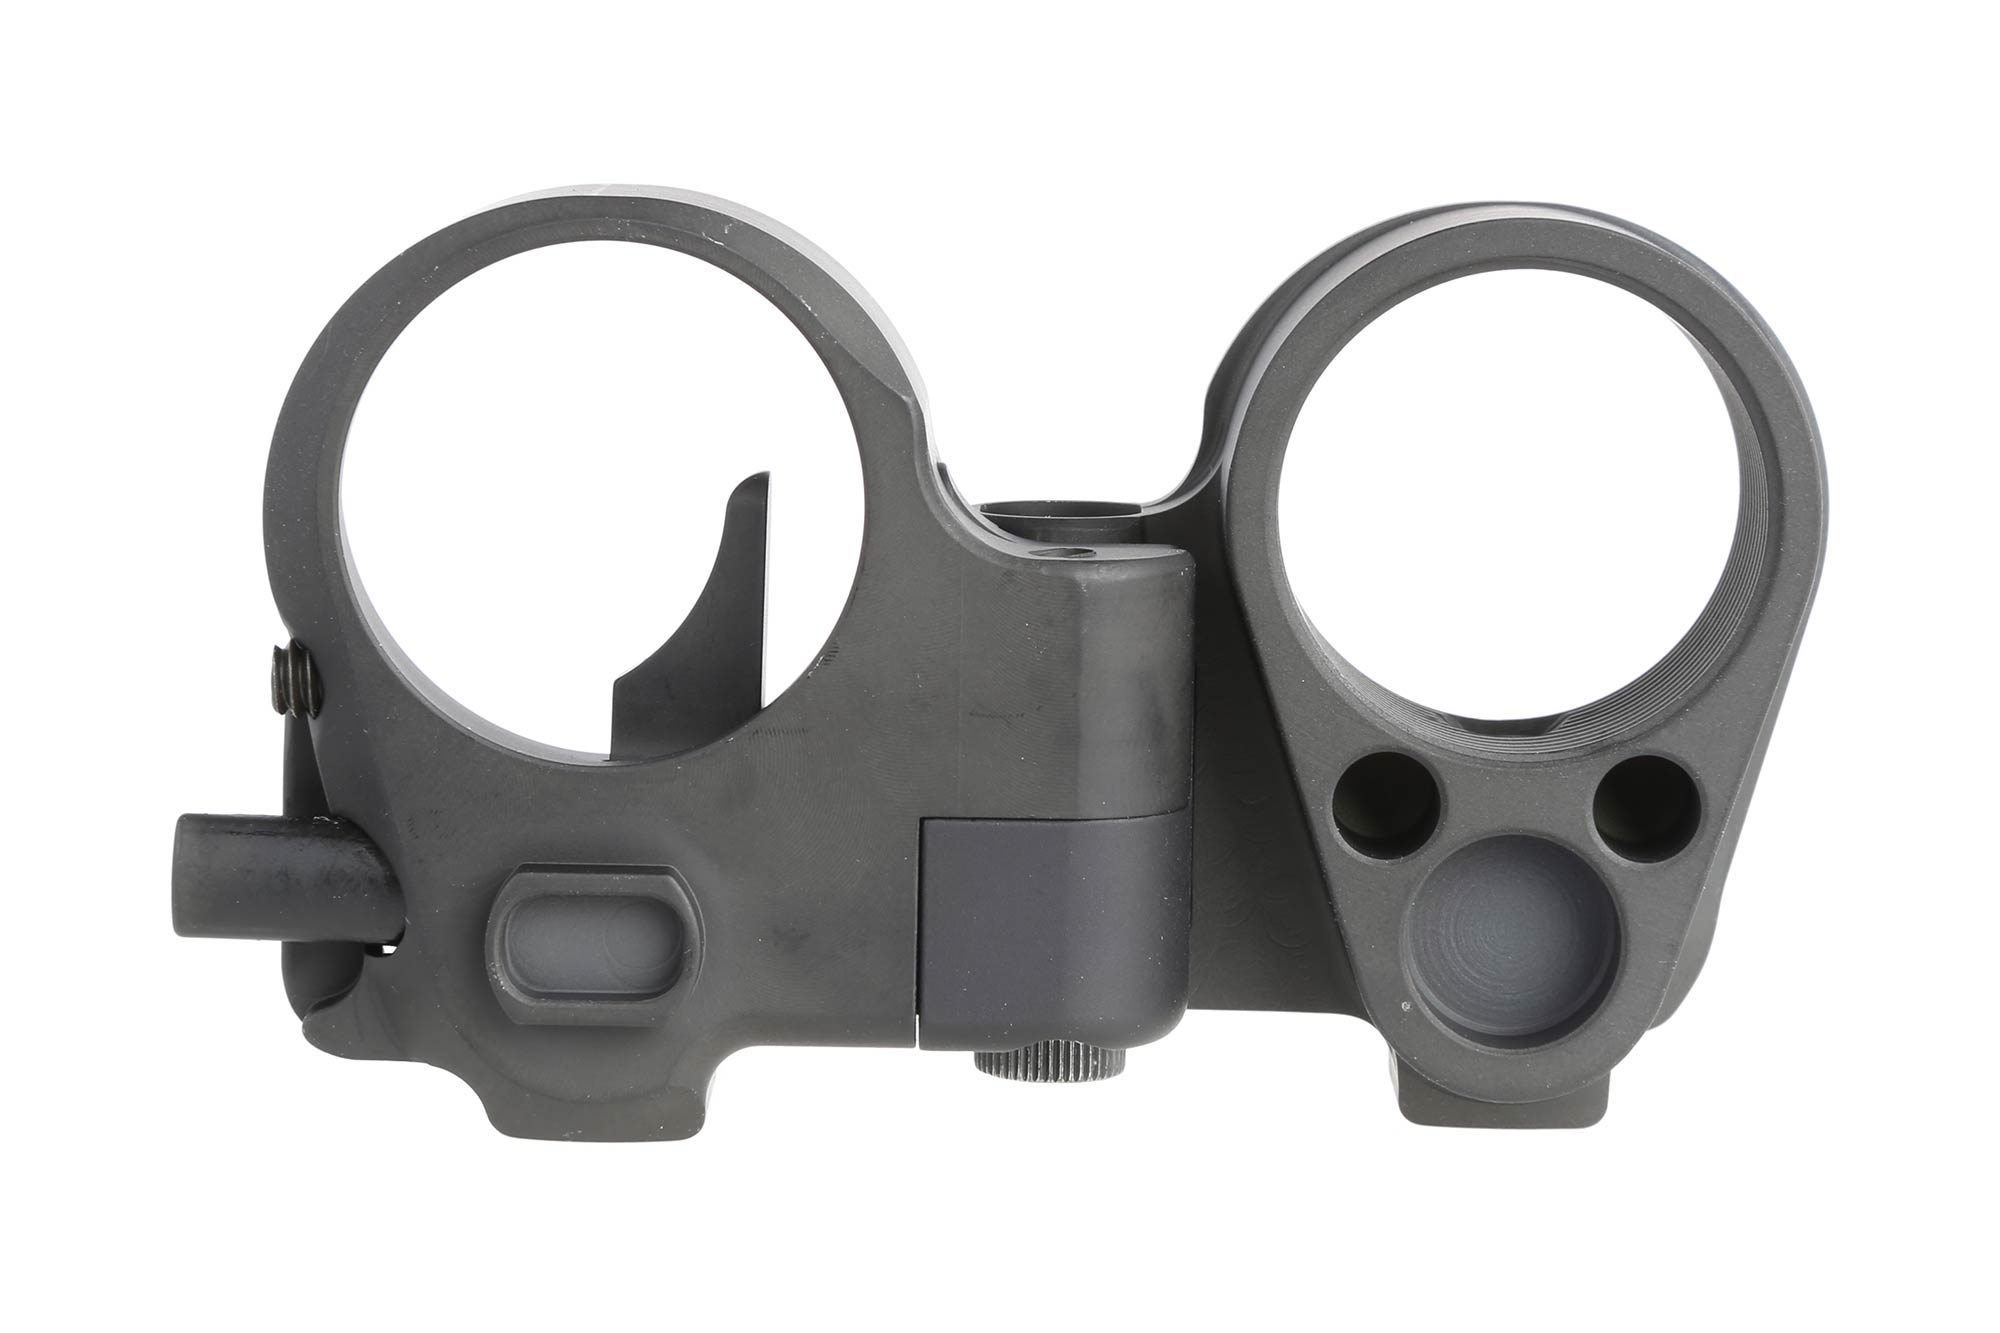 The Law Tactical AR Folding Stock Adapter Gen 3-M makes your ar-15 and ar-308 into a compact weapon system for storage